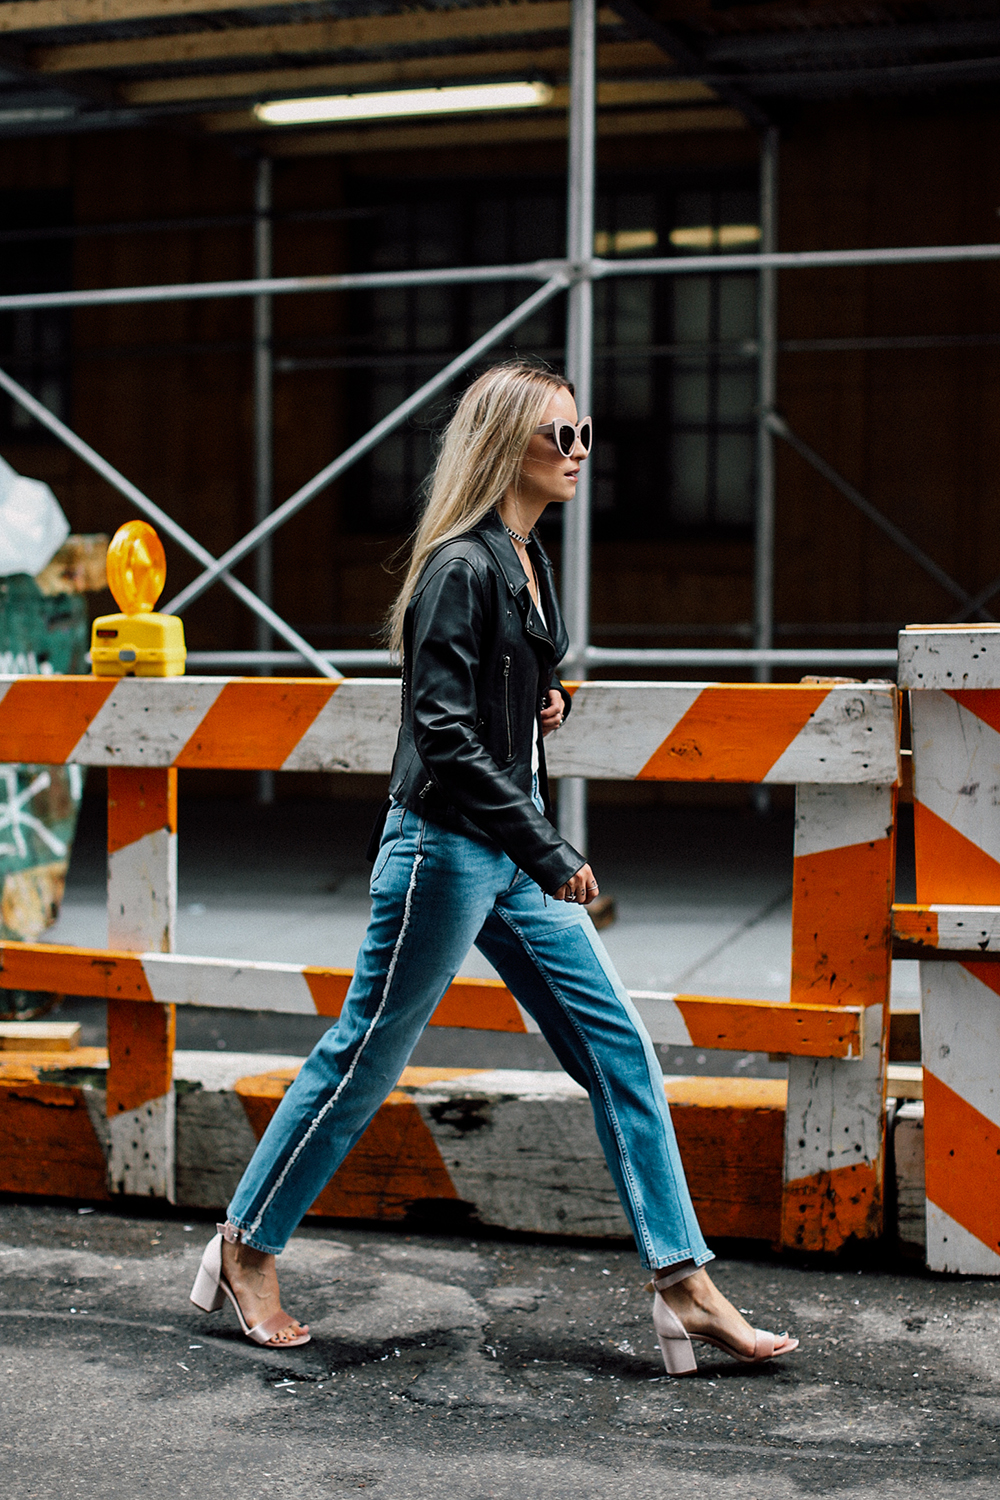 Charlotte Groeneveld Thefashionguitar in Chinese Laundry heels via DSW and MIH Jeans denim